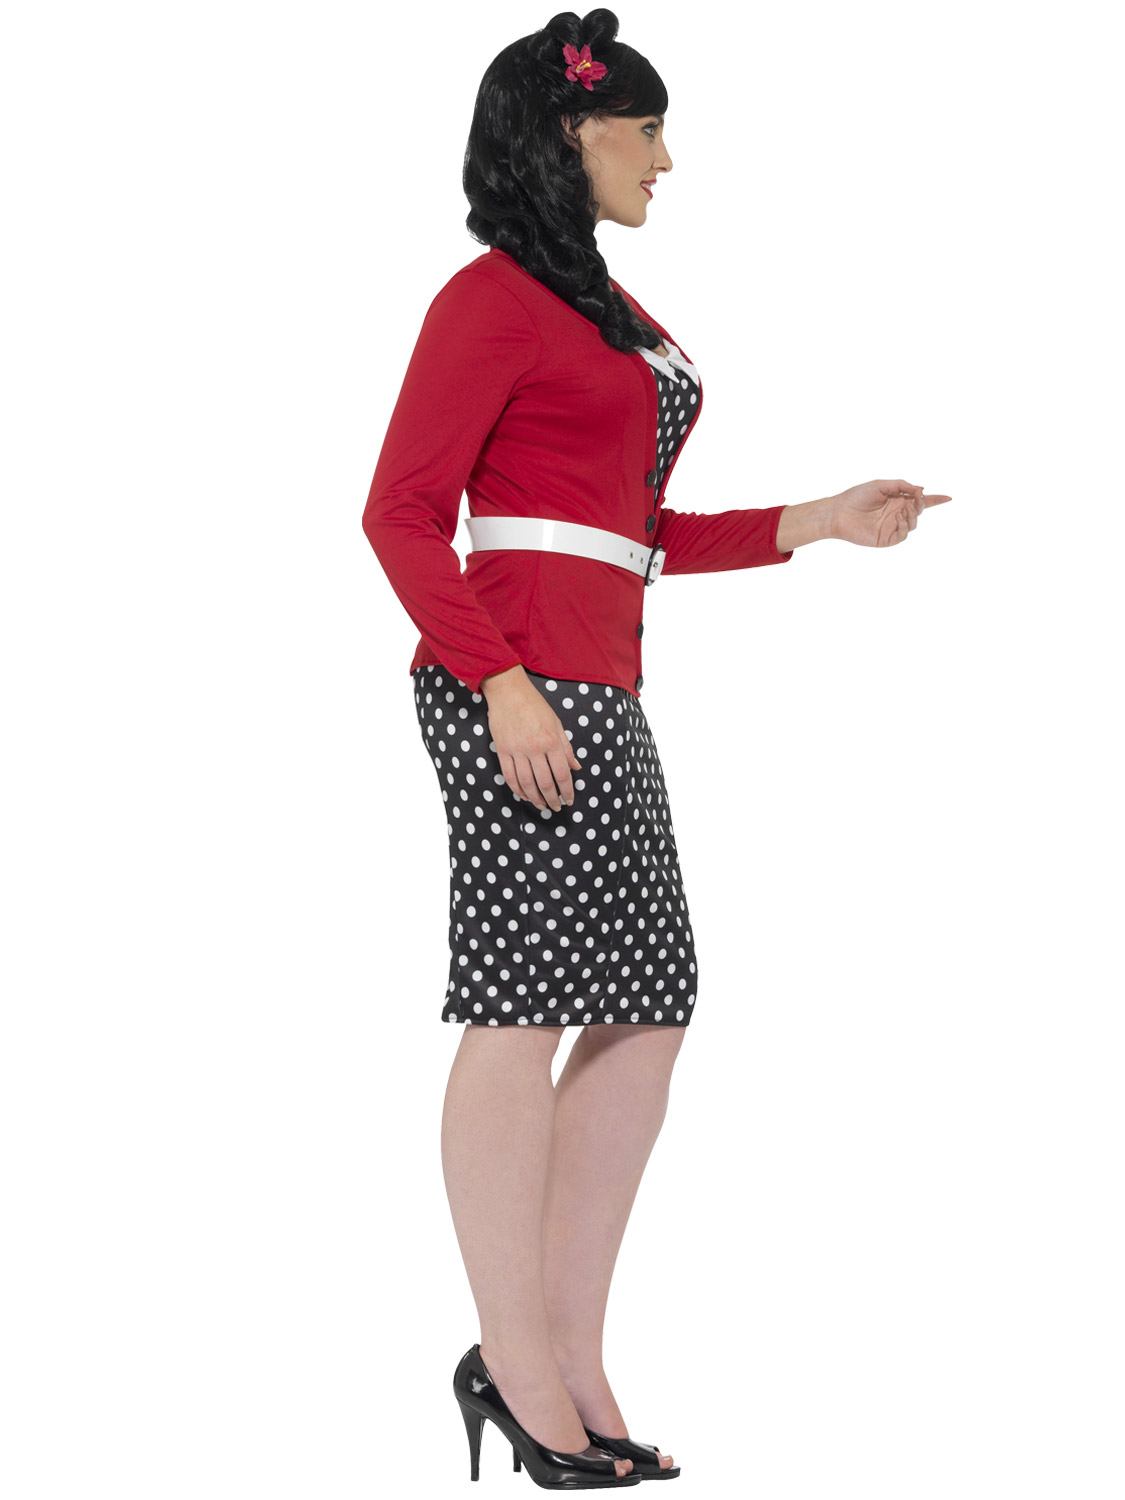 Ladies 1950s pin up curves costume adult womans 50s plus size image 4 solutioingenieria Choice Image